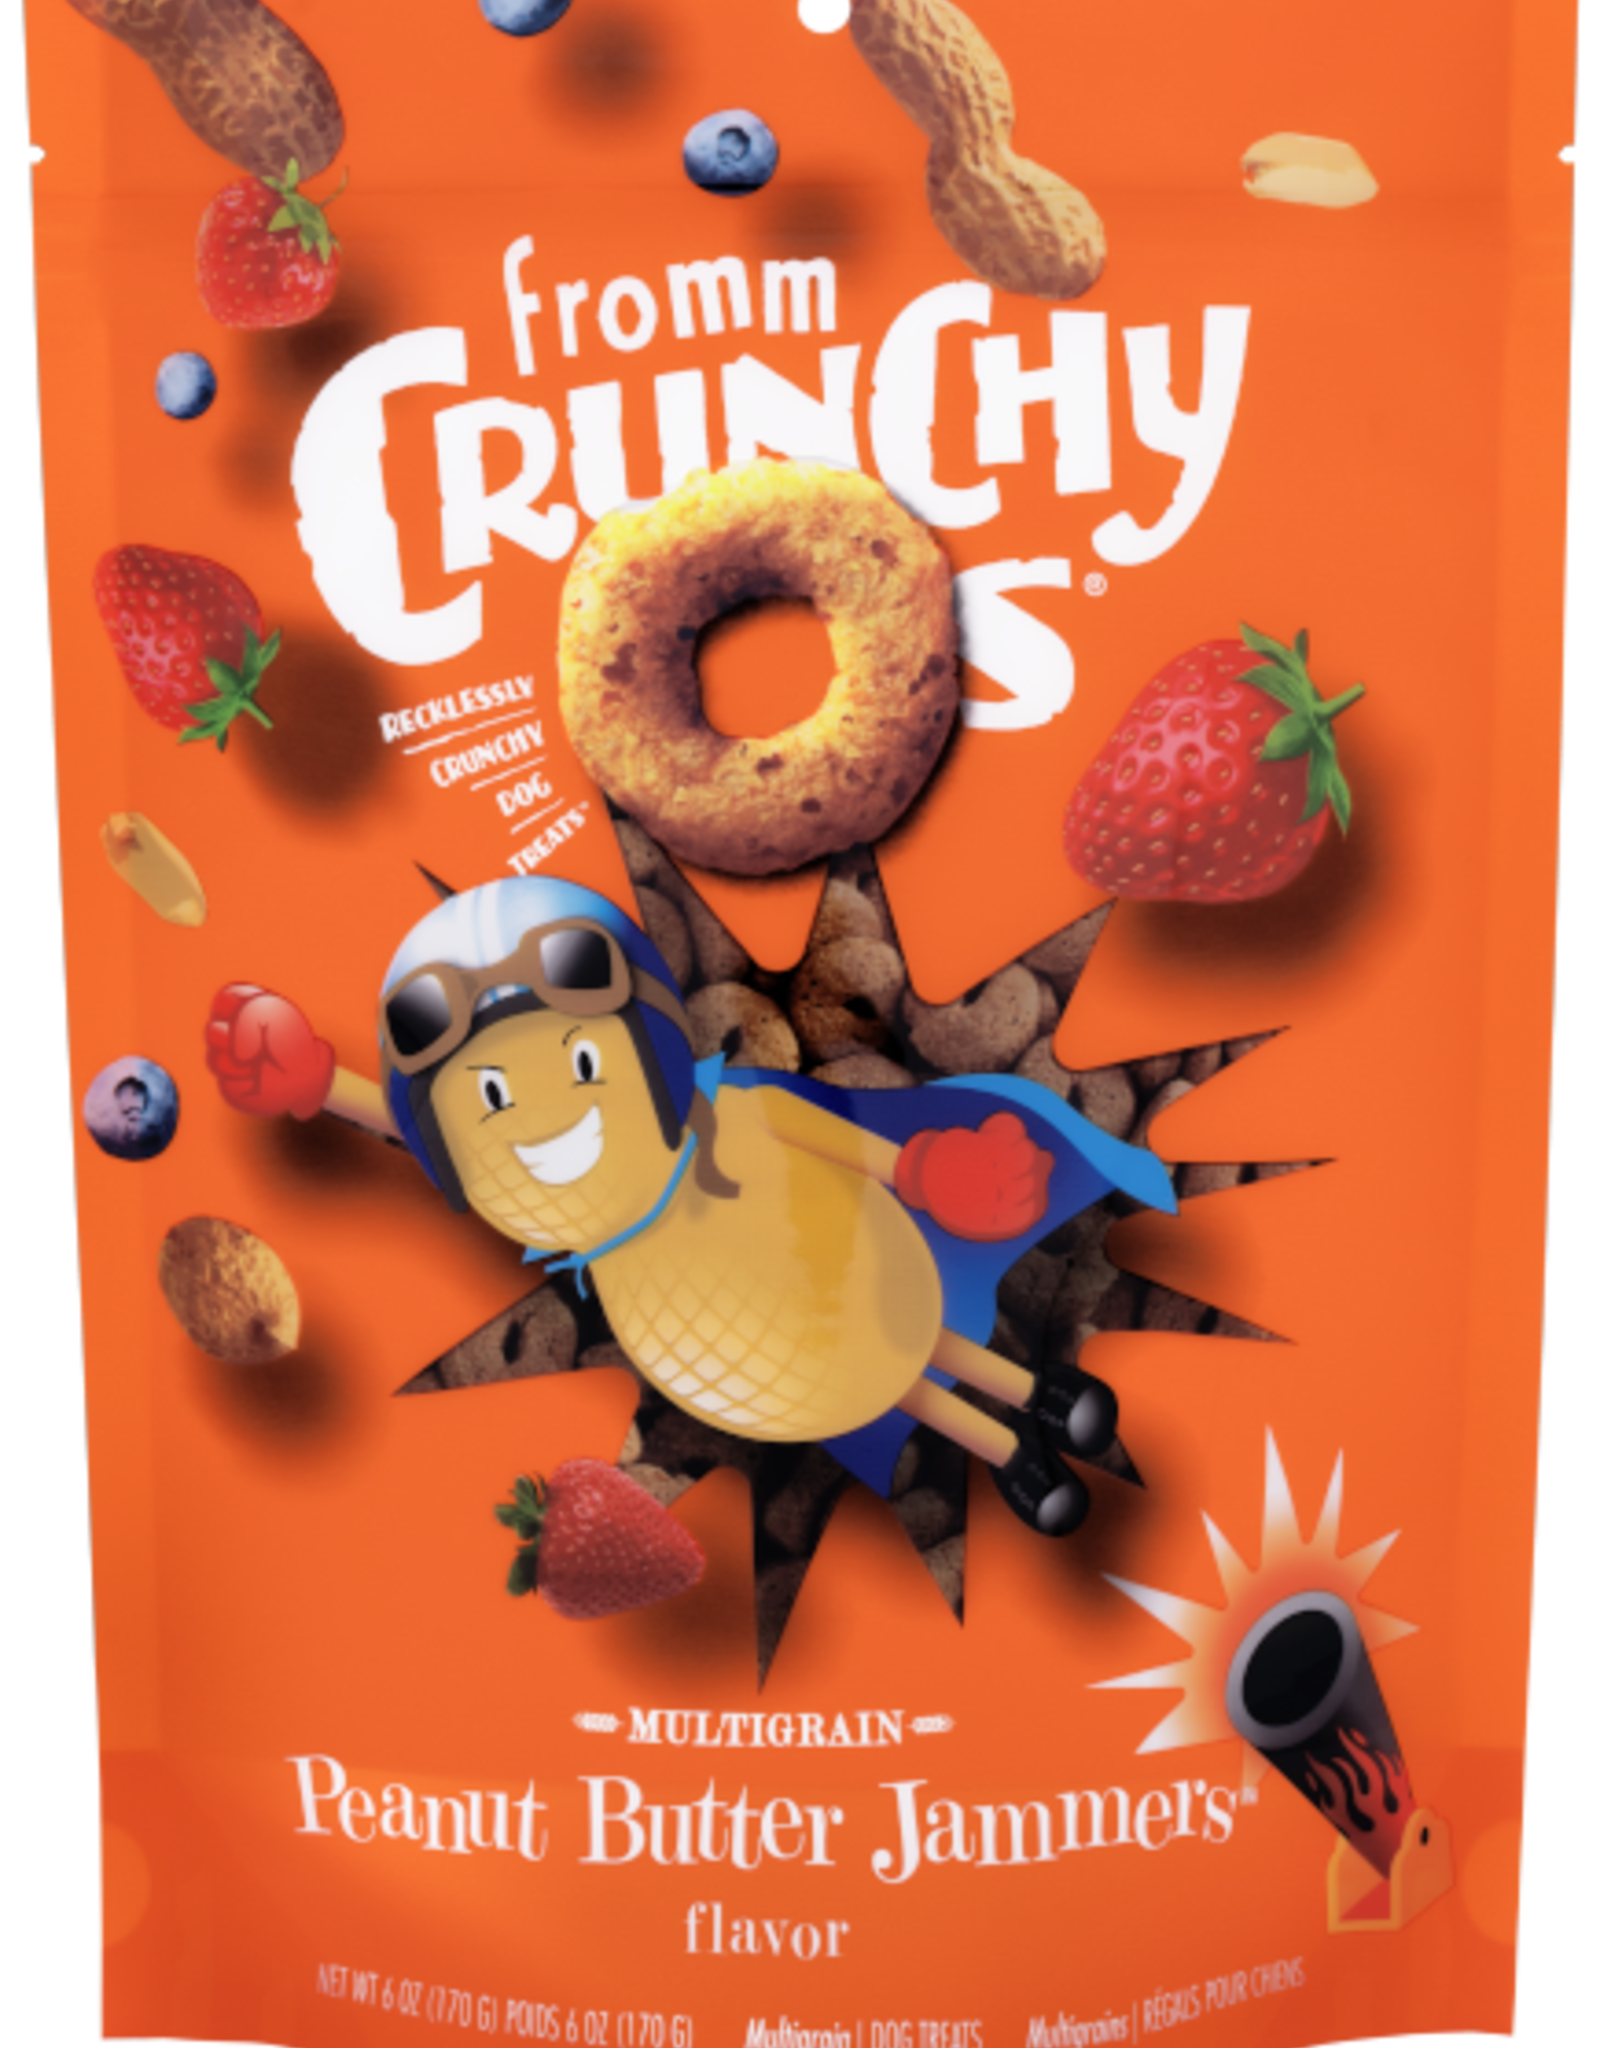 Fromm Crunchy O's PB Jammers 6oz